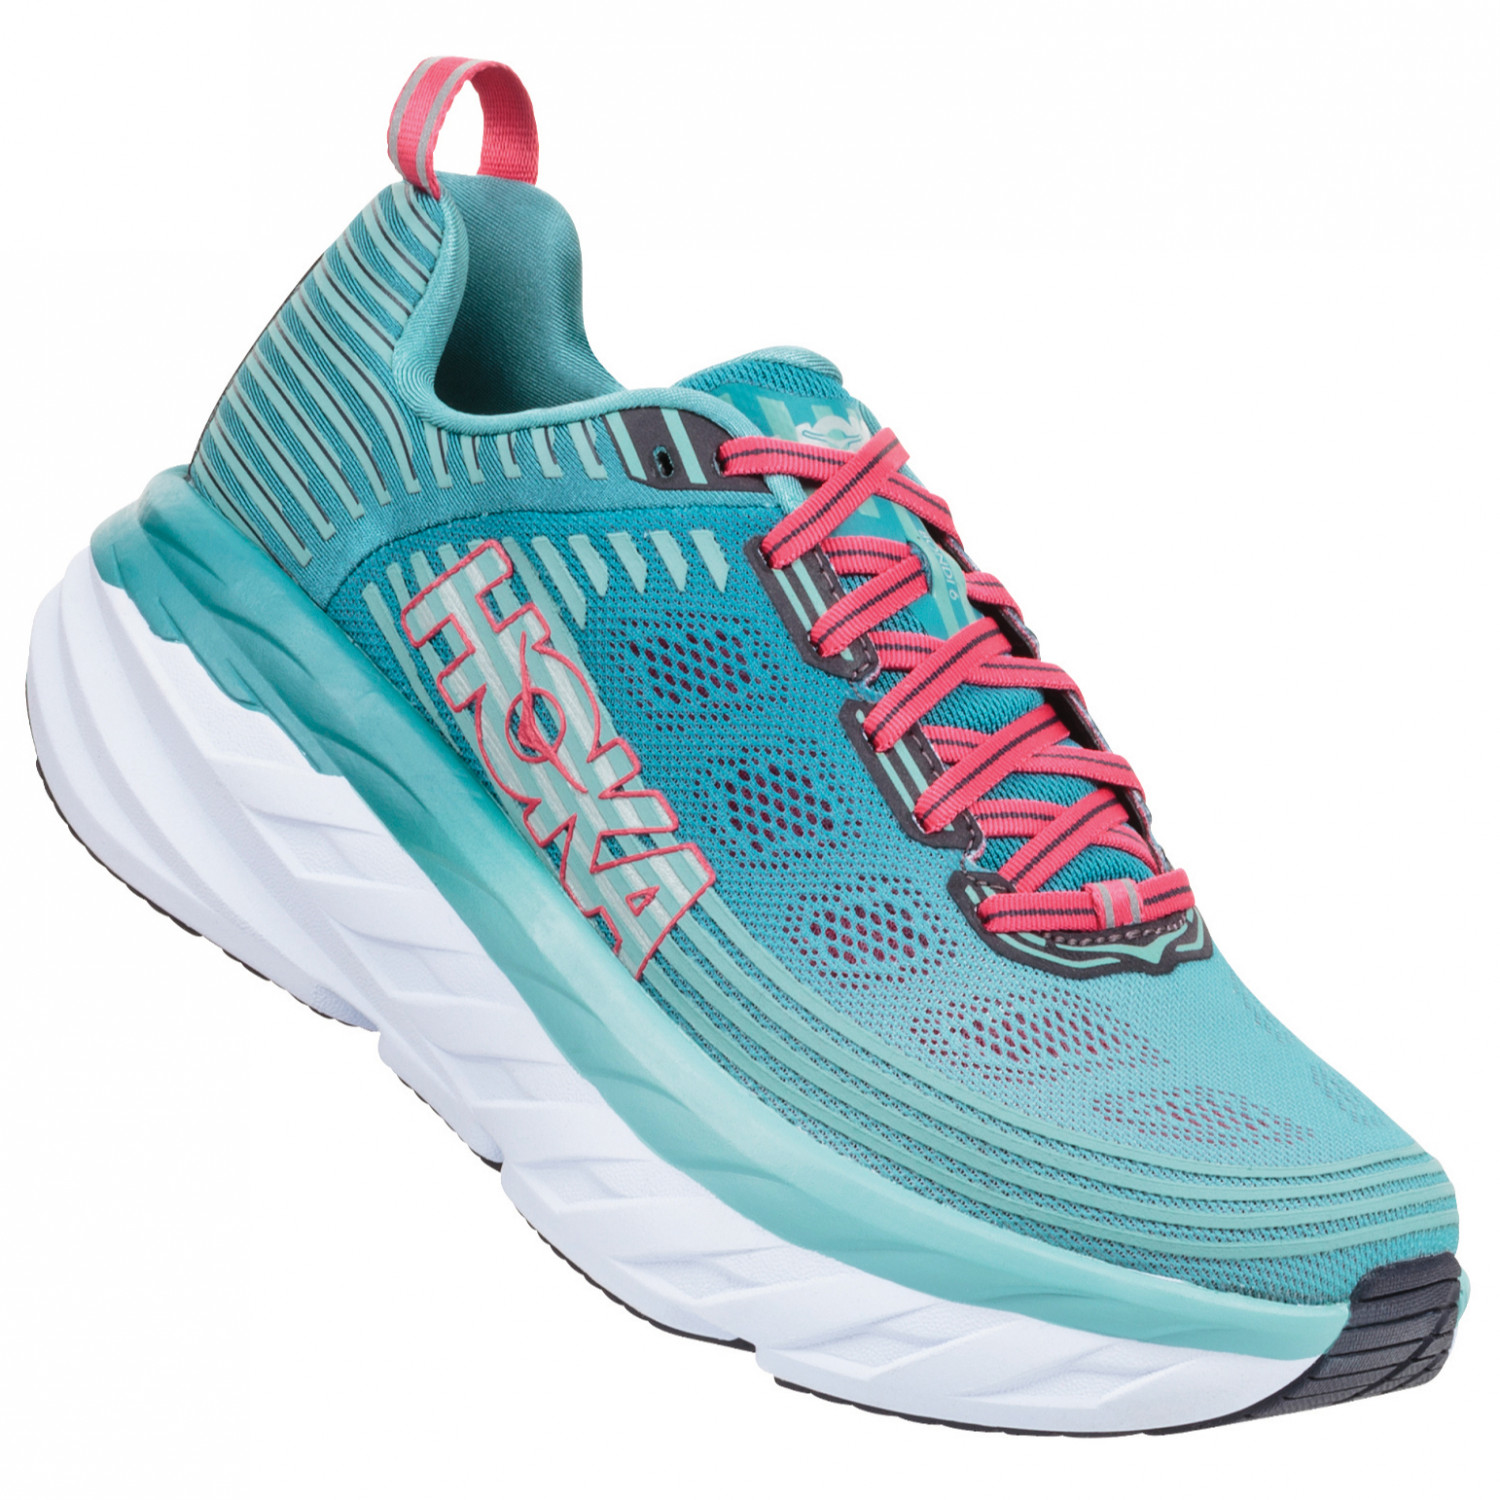 Hoka One One Bondi 6 - Running Shoes Women's | Free UK